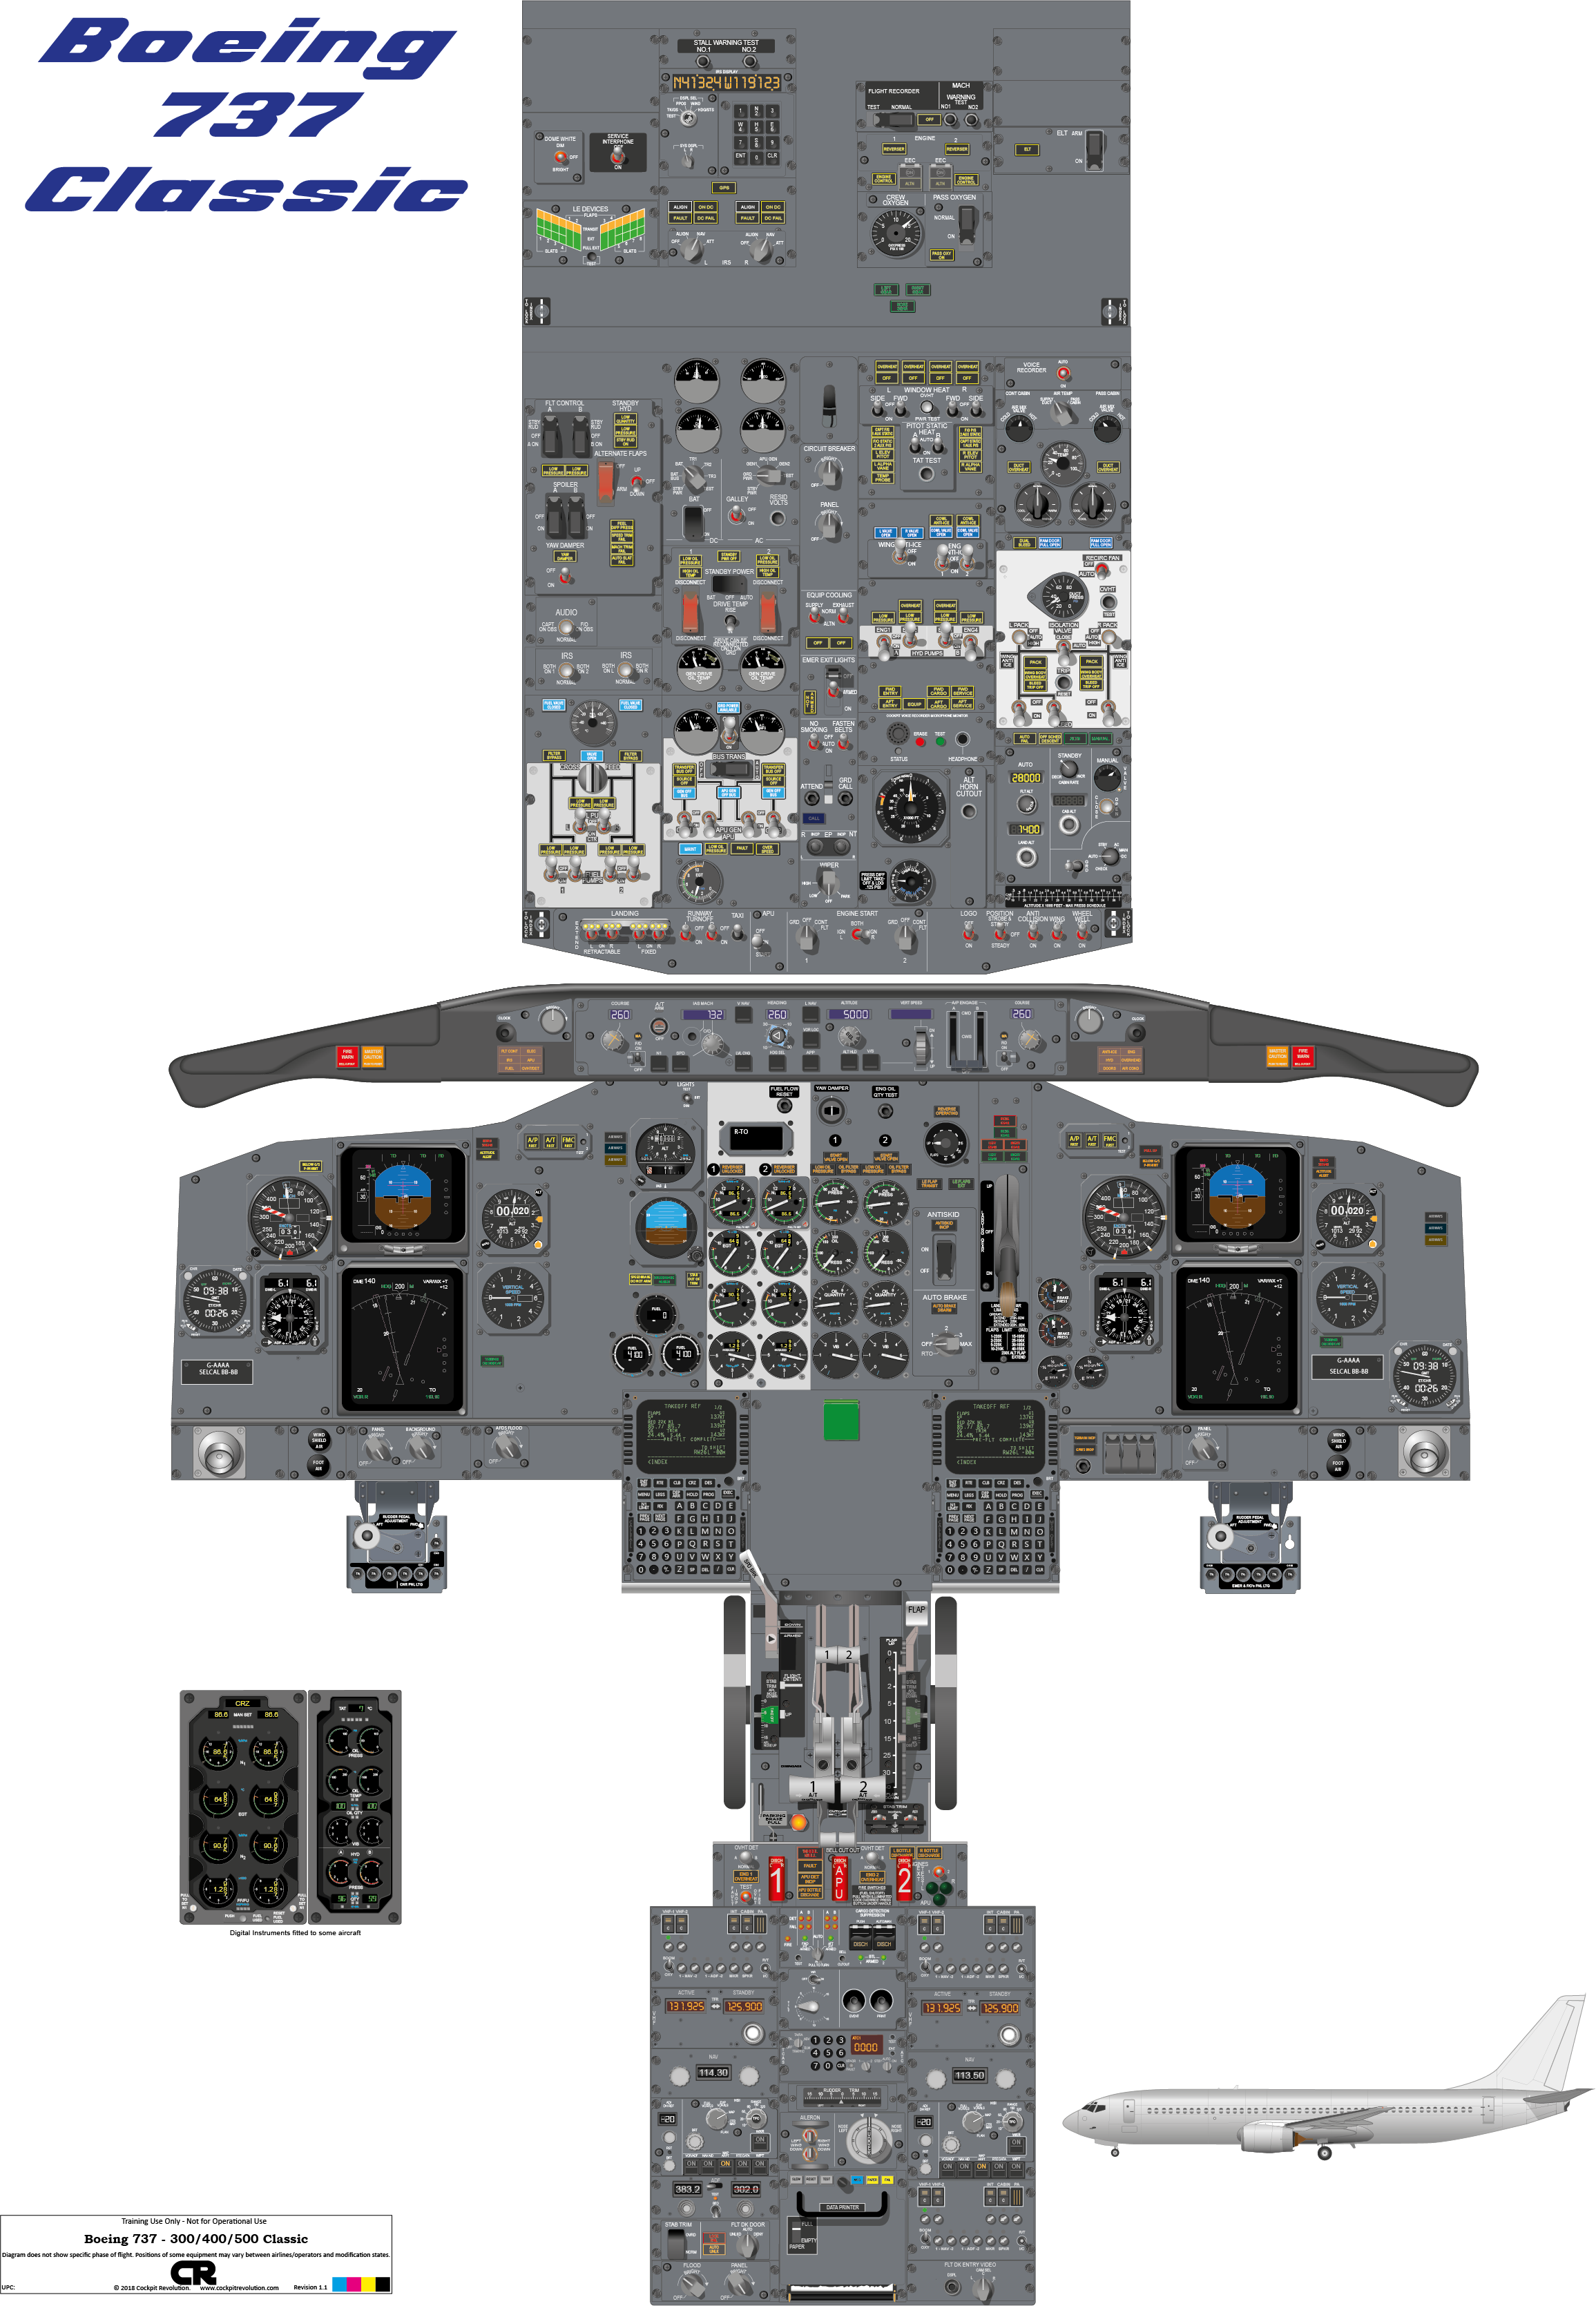 Cockpit Poster Of The Boeing 737 400  500 Drawn From